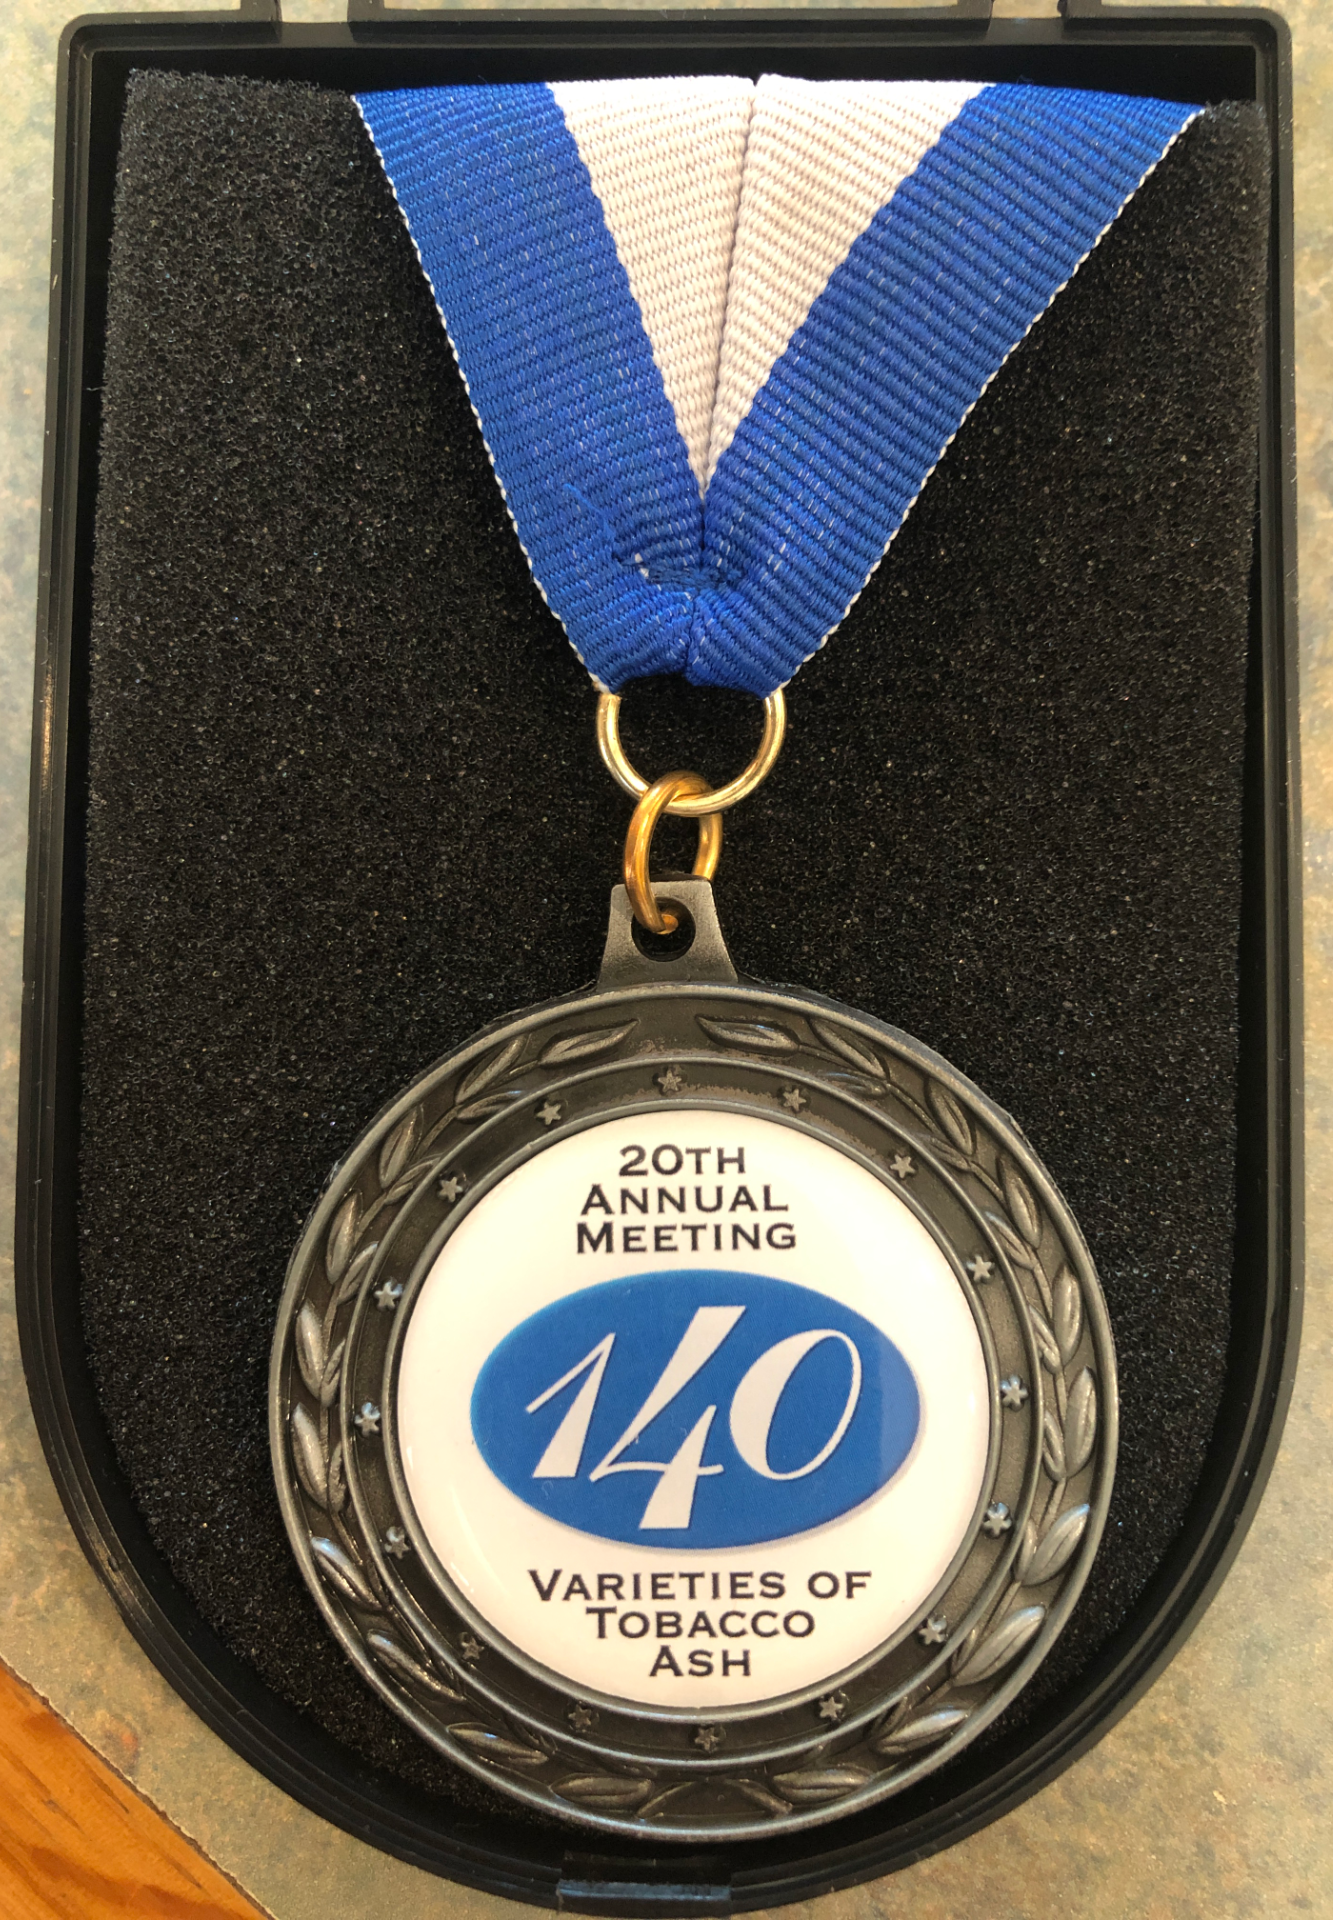 The 2018 140 Varieties of Tobacco Ash Dinner Medal